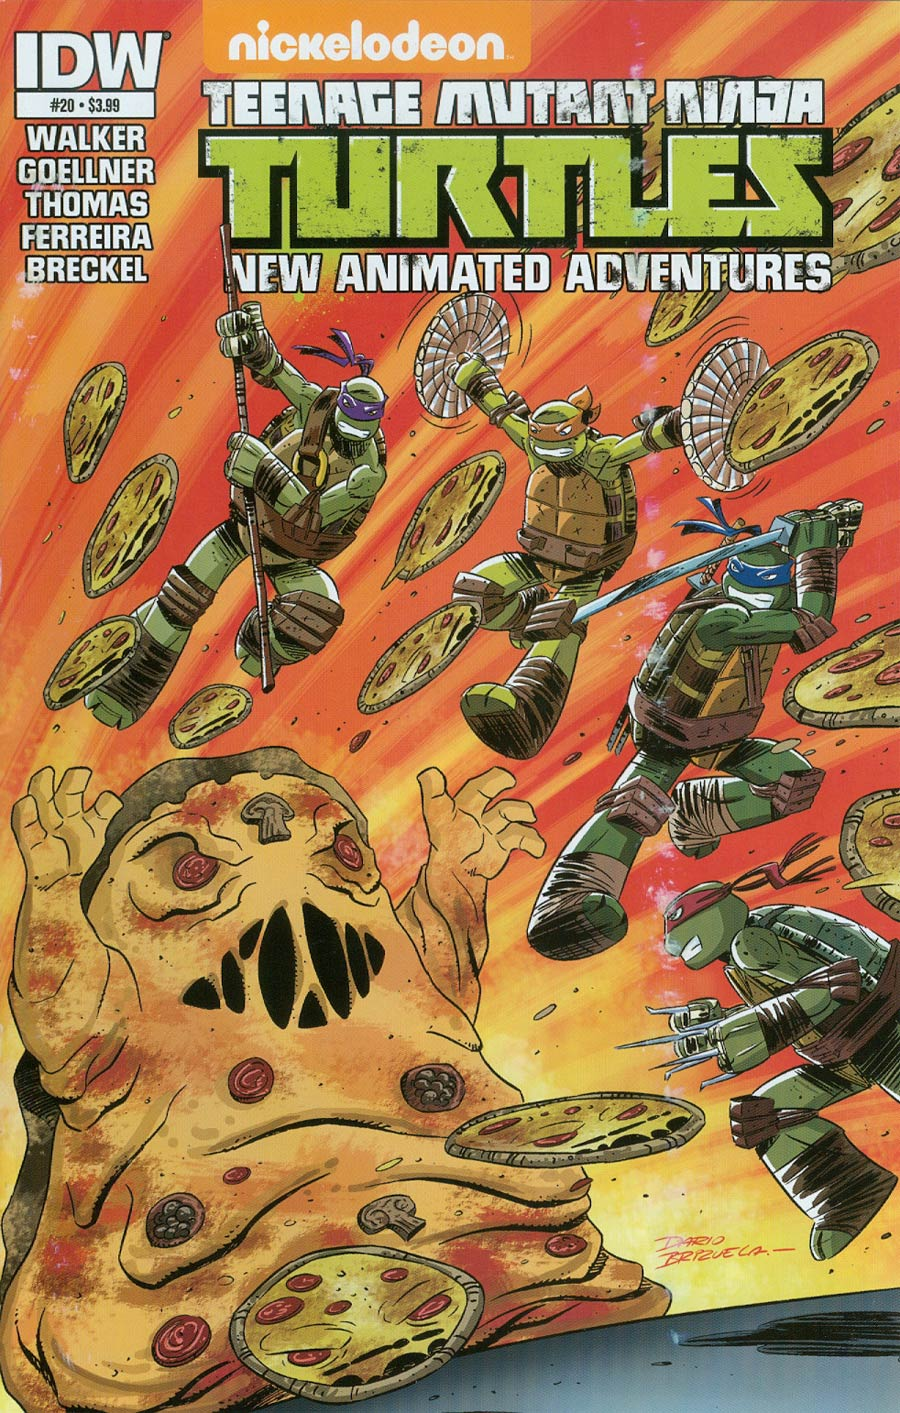 Teenage Mutant Ninja Turtles New Animated Adventures #20 Cover A Regular Dario Brizuela Cover